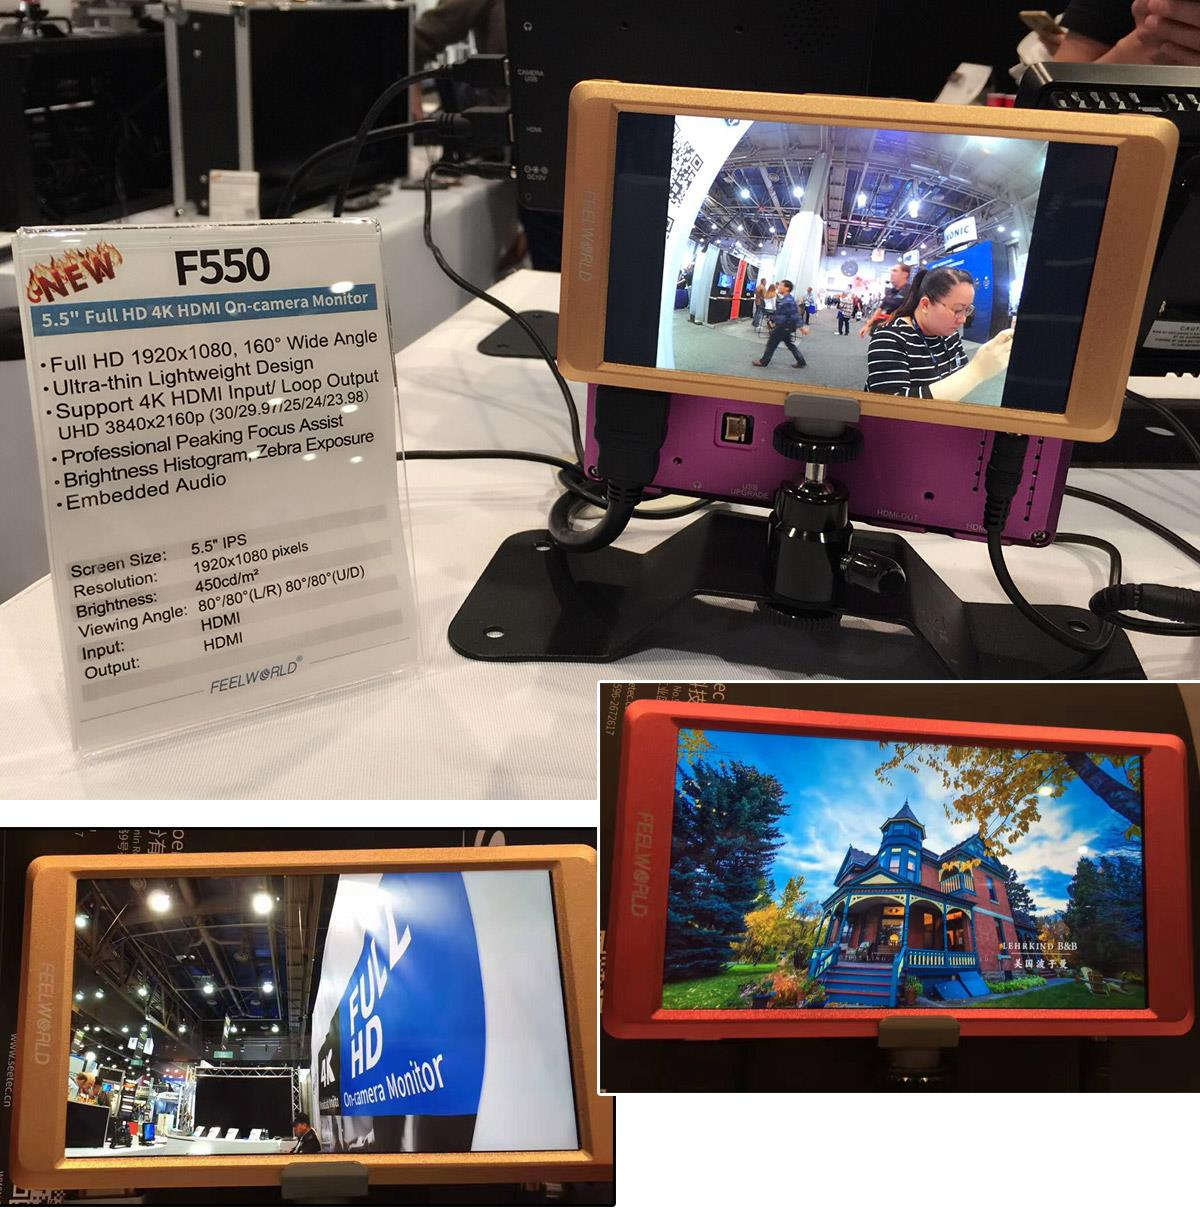 /F550 55 inch 4K monitor full hd